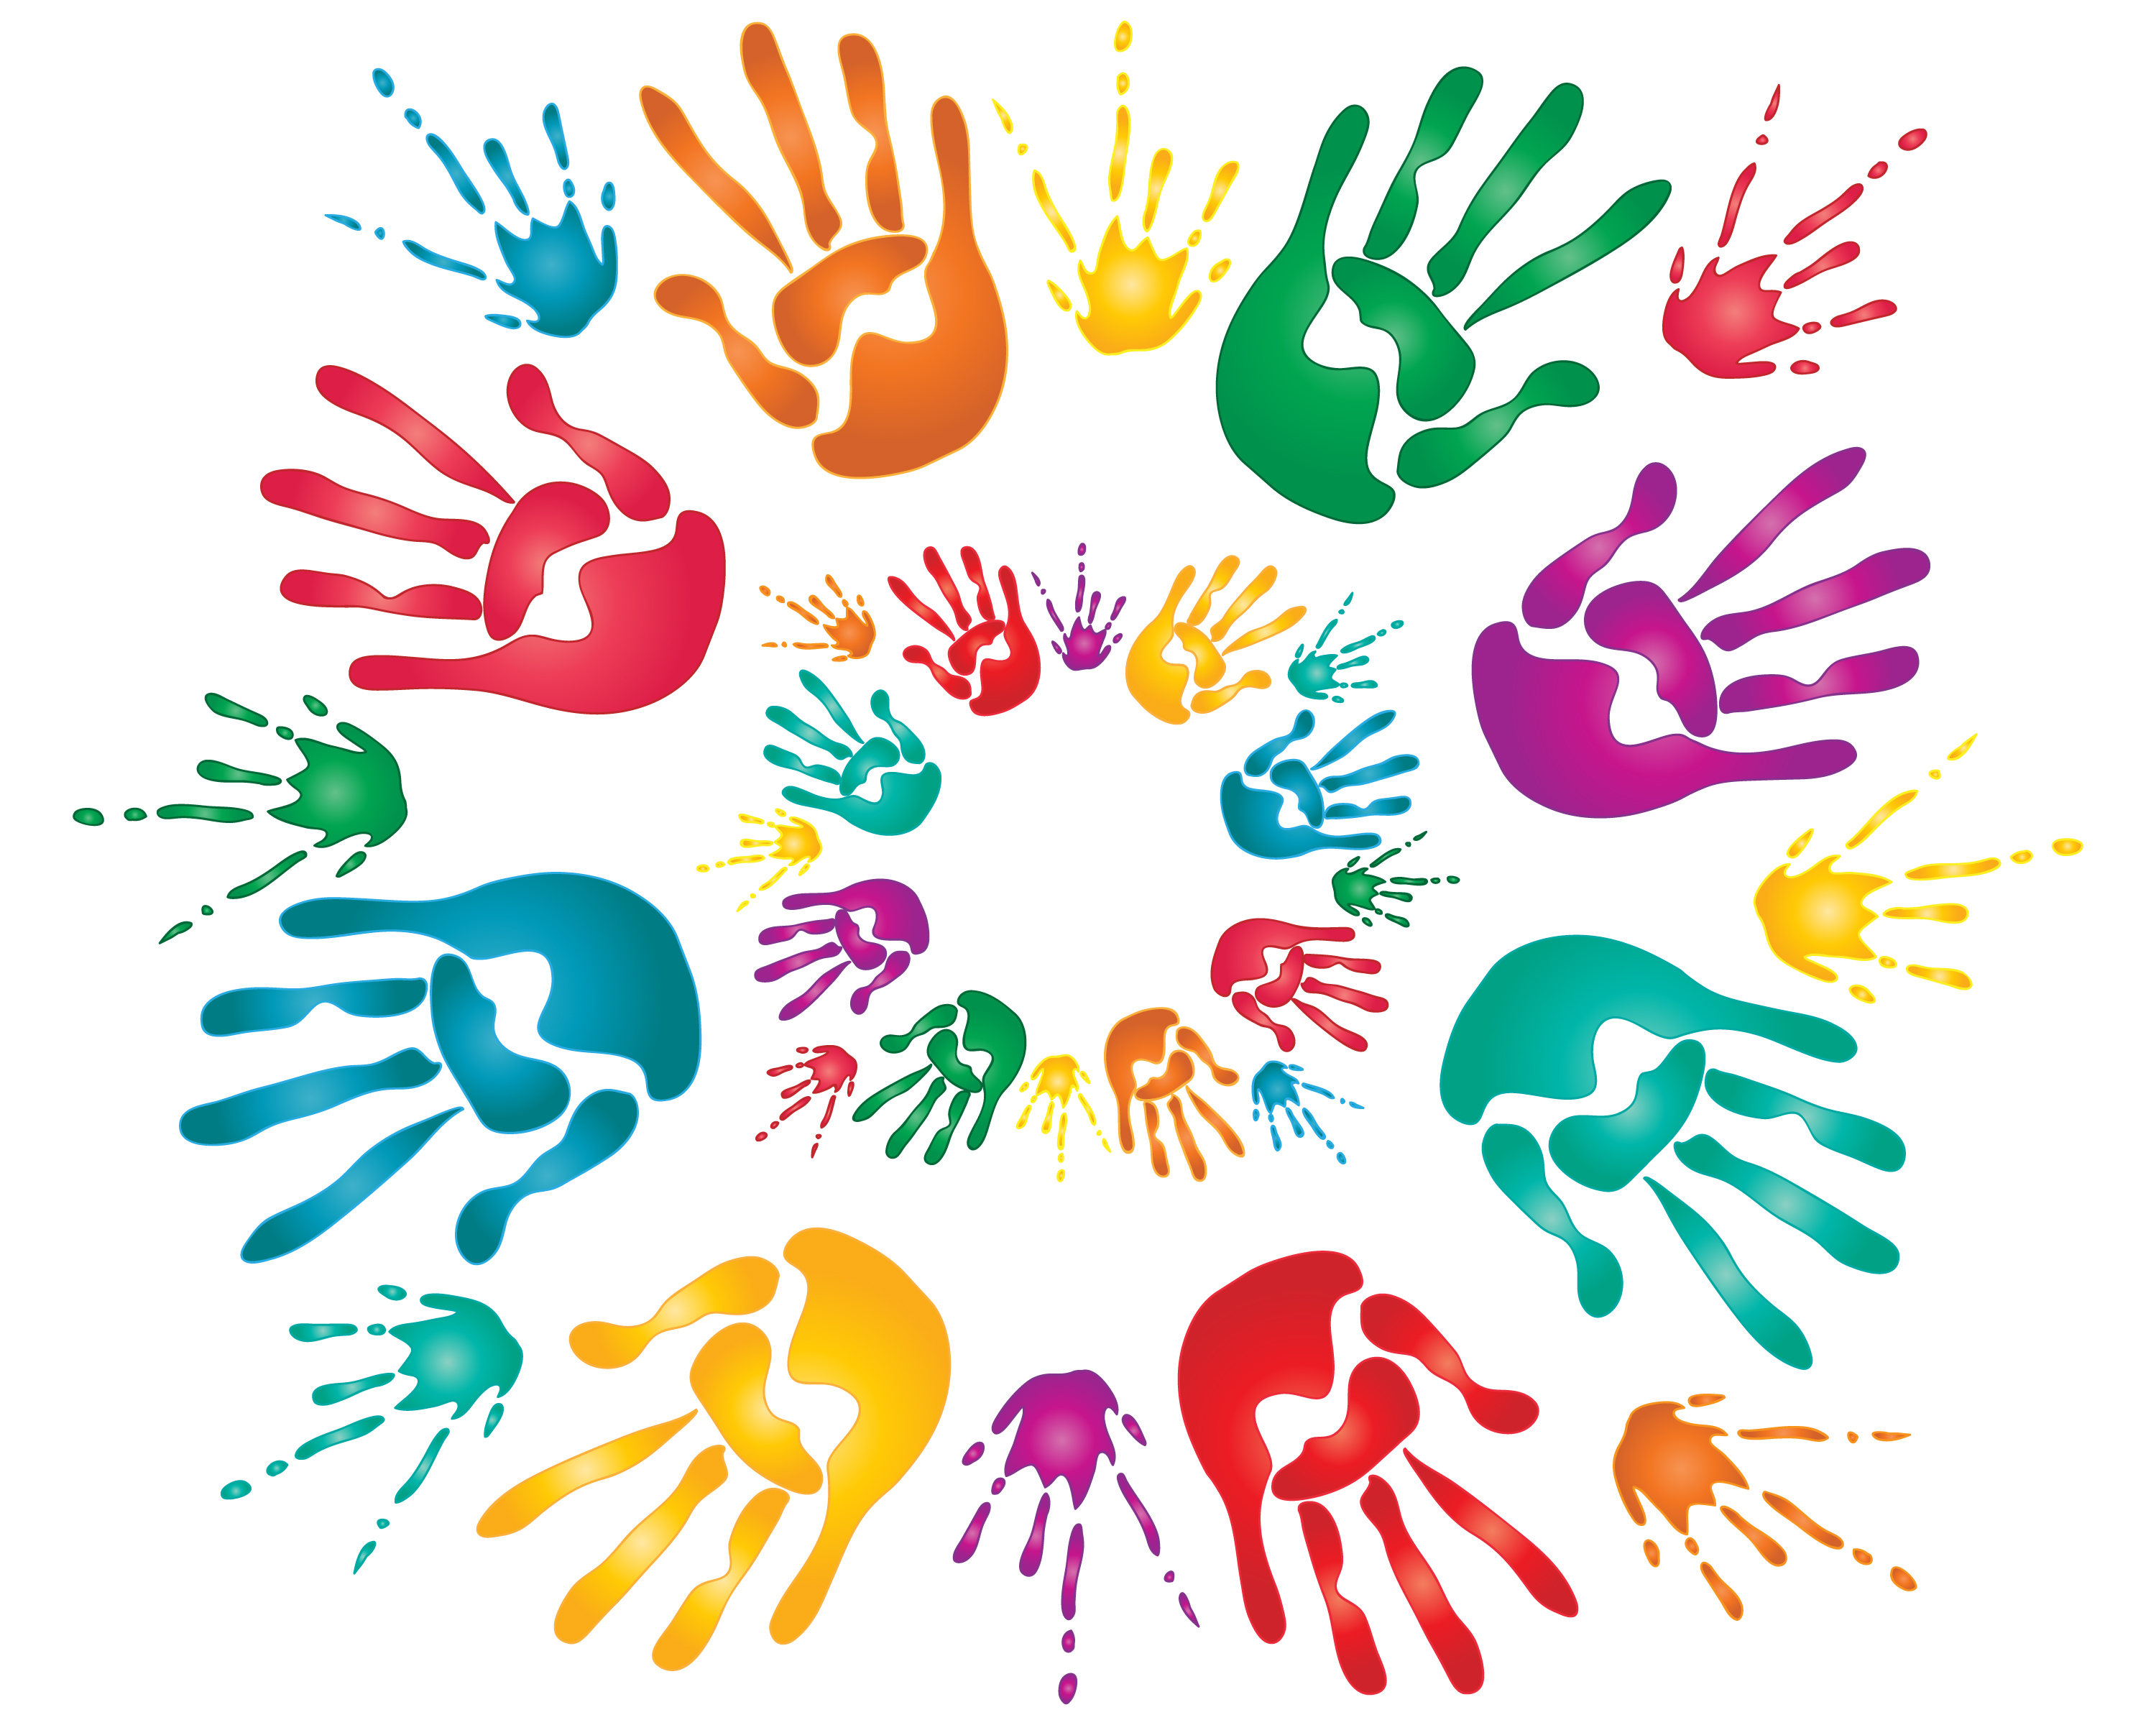 children hands clipart - photo #47